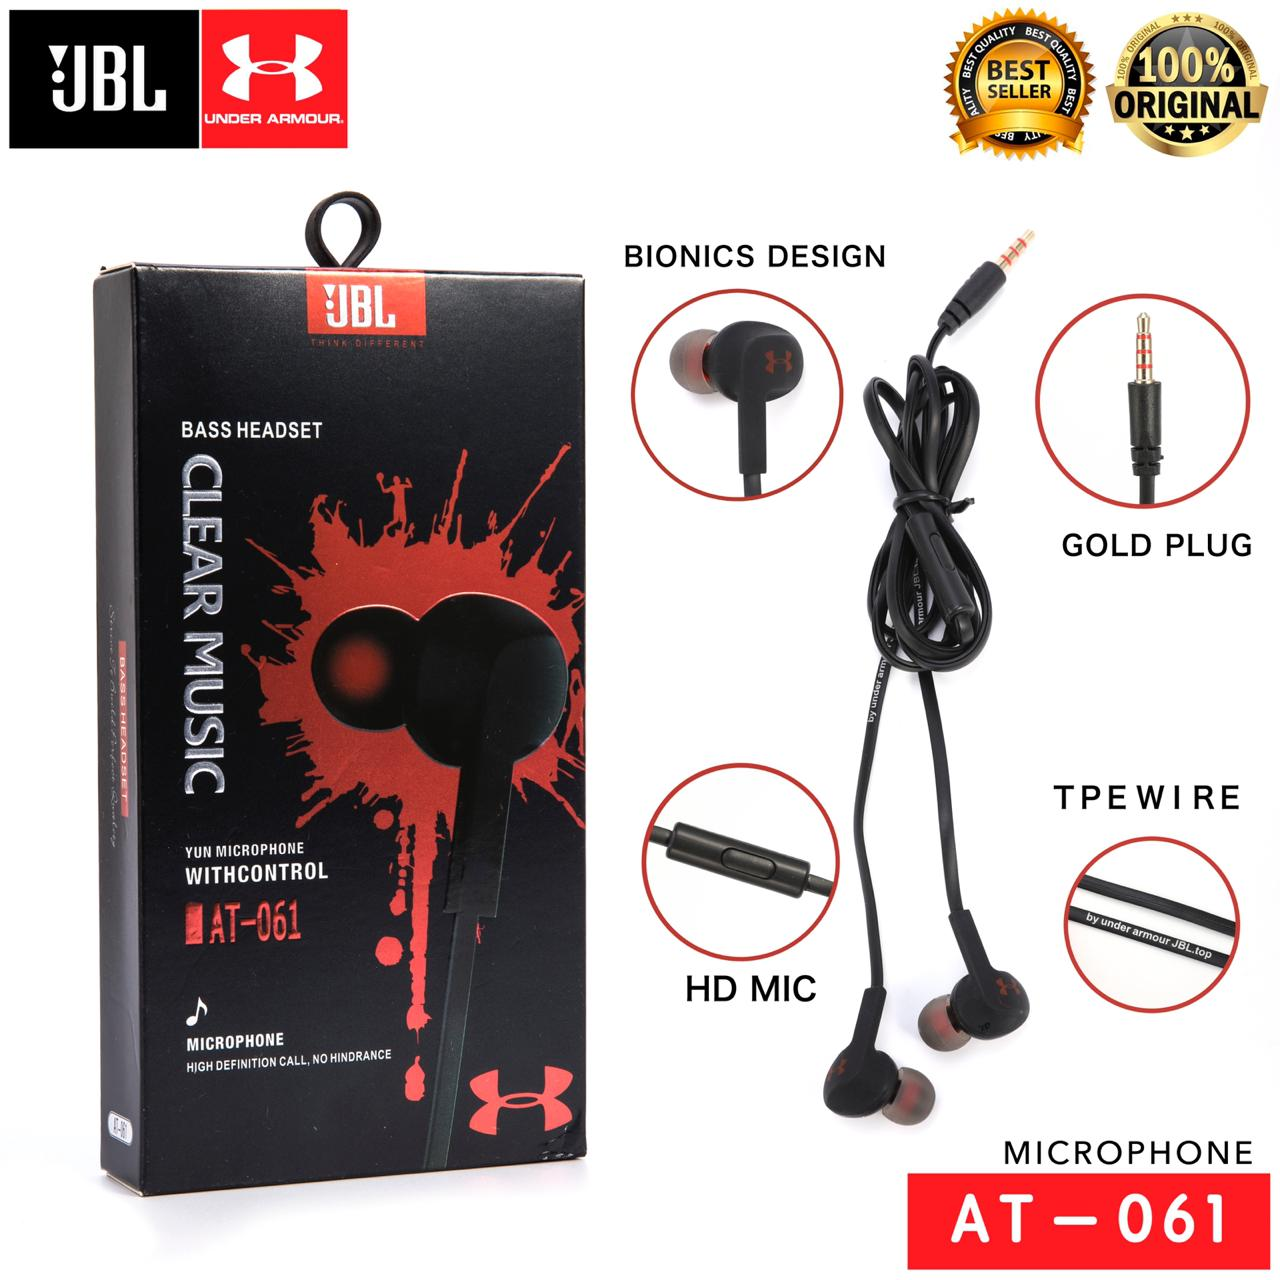 Handsfree JBL AT-061 (New)